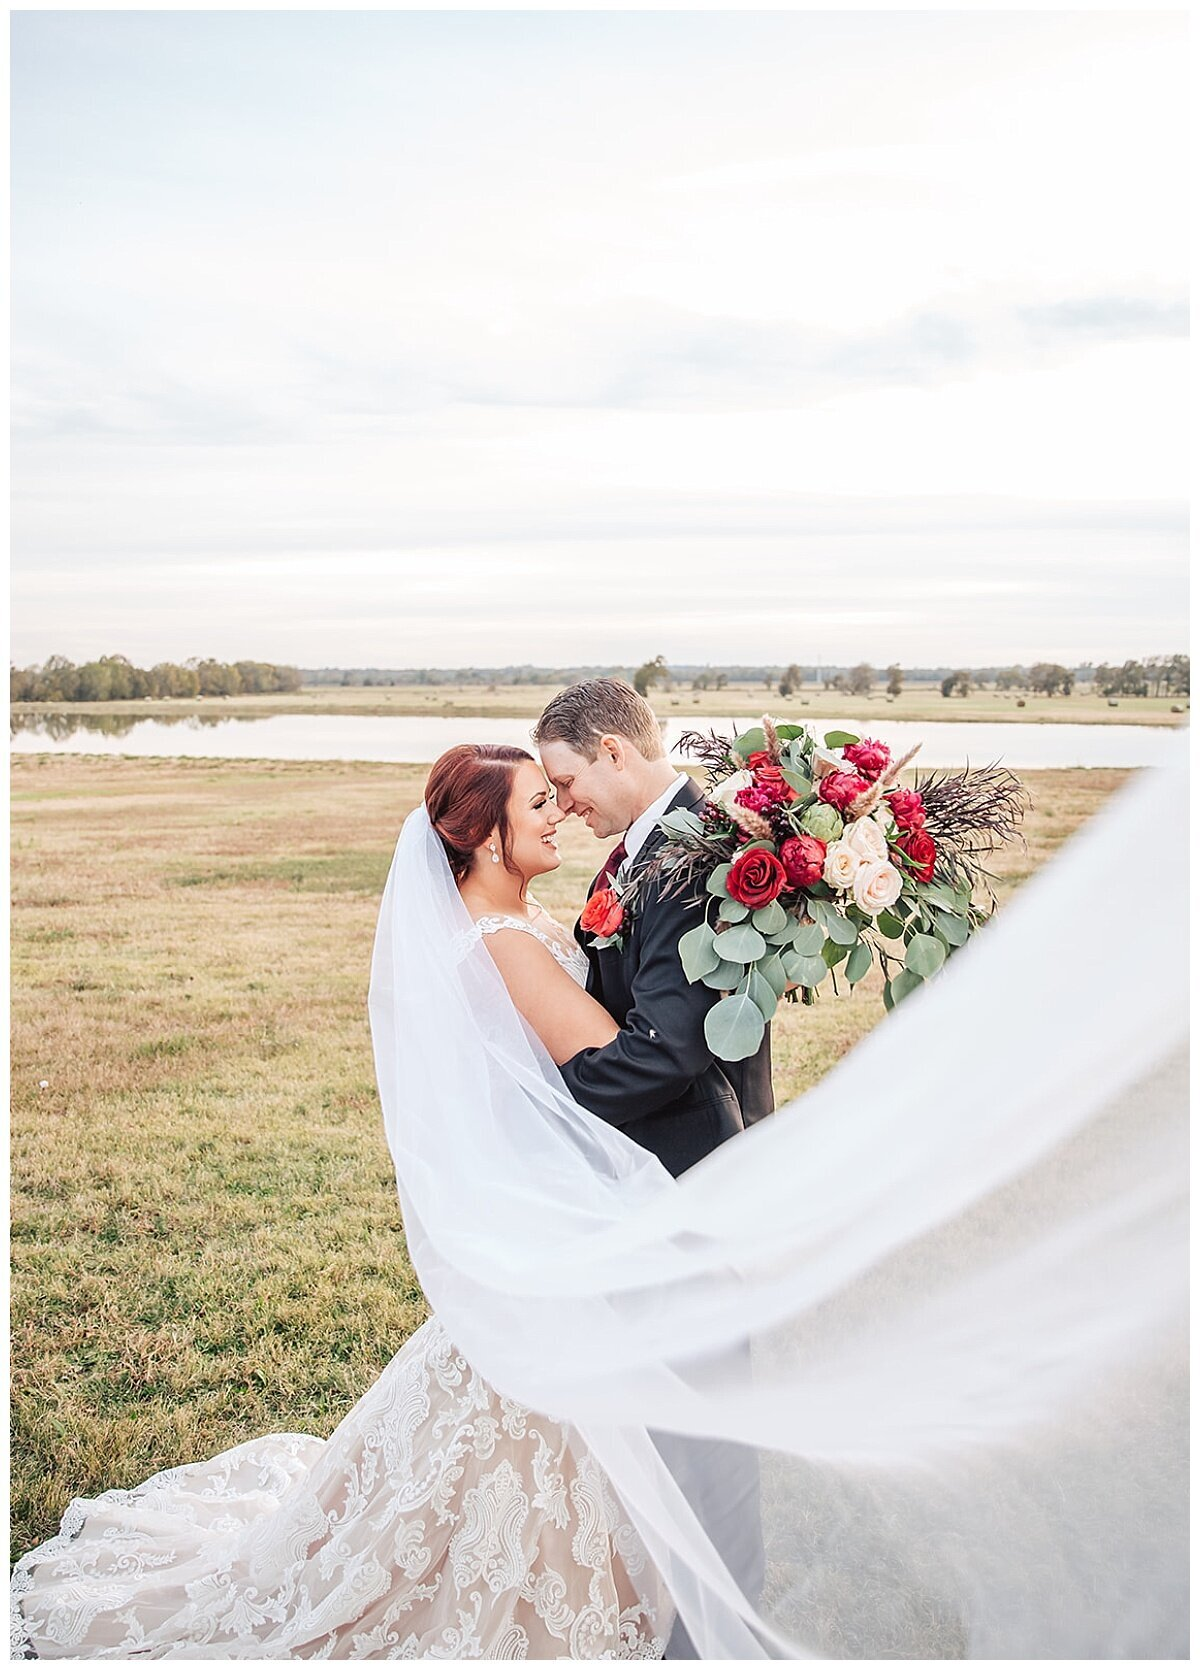 Houston Wedding Planner for Glam Boho Inspired Wedding- Bride and Groom Photos at Emery's Buffalo Creek- J Richter Events_0002